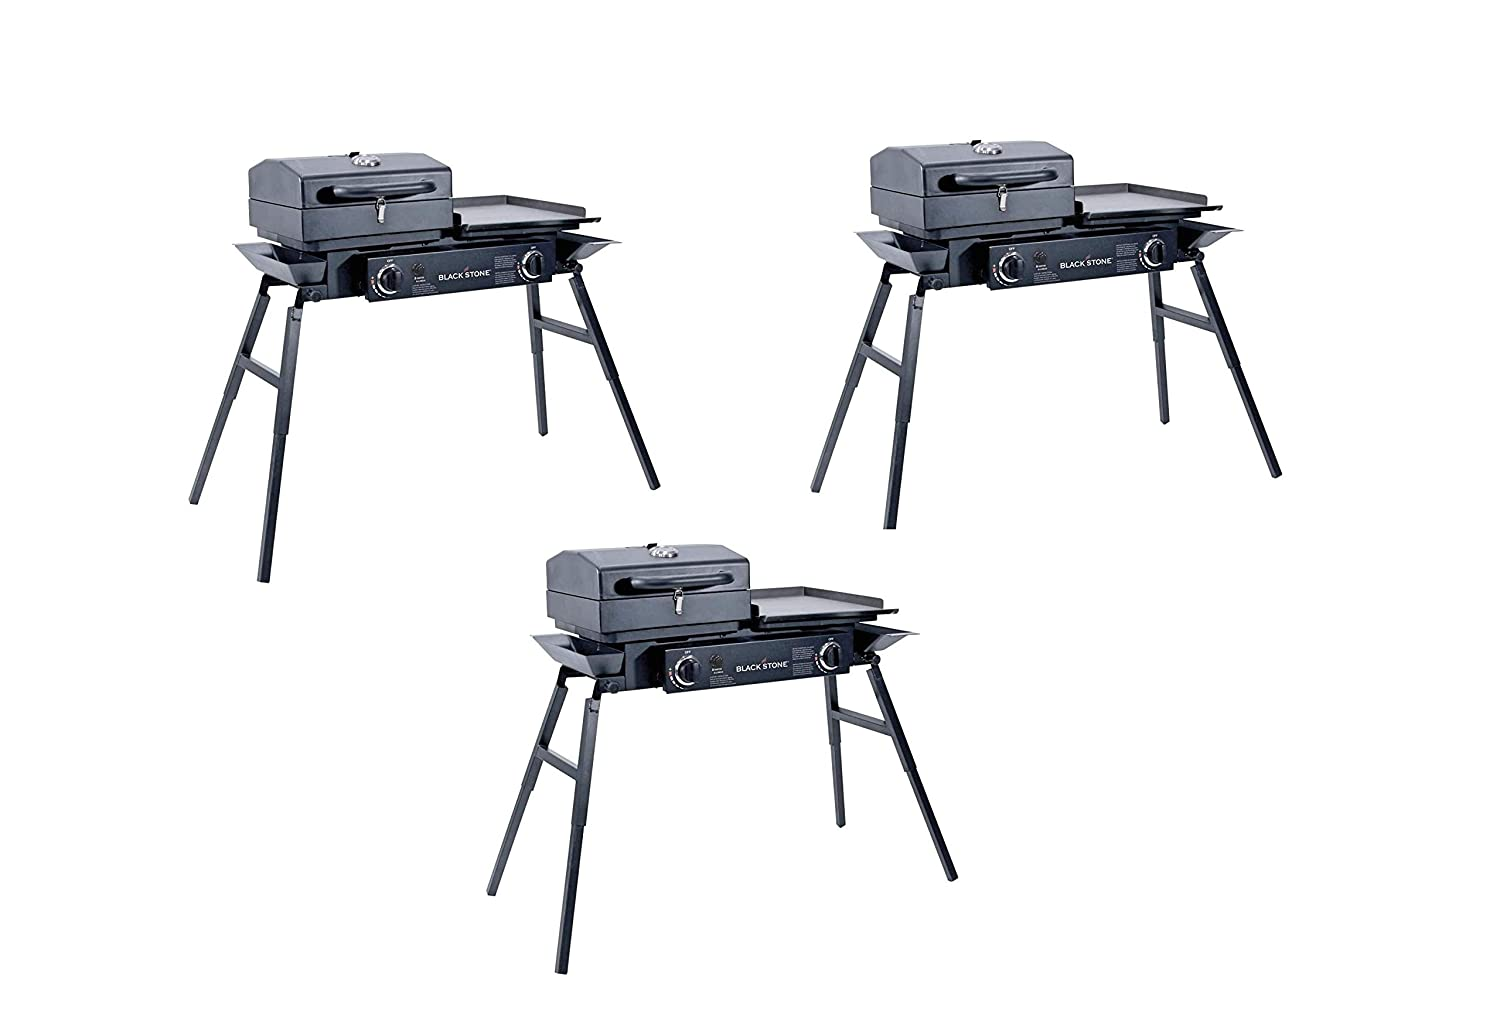 Portable Gas Grill and Griddle Combo Tailgater, Barbecue Box Two Open Burners Blackstone Grills Tailgater Griddle Top 2-Pack